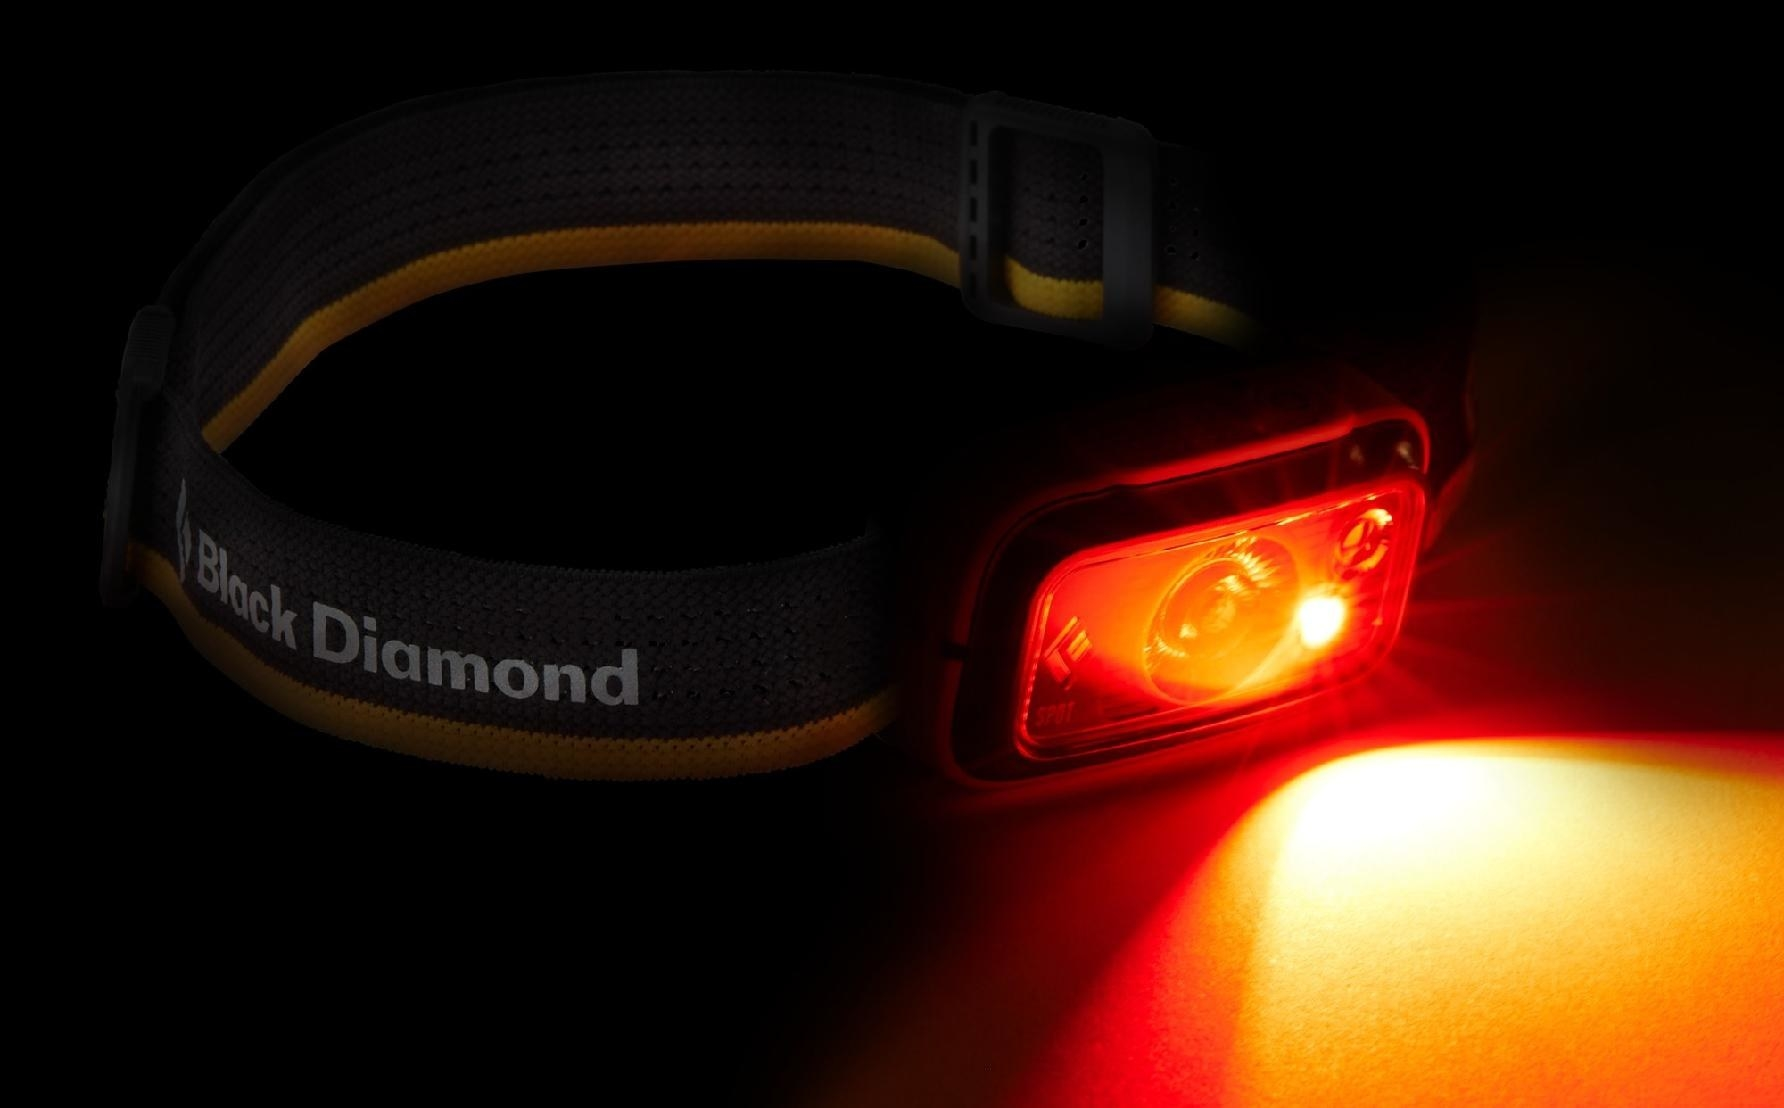 The headlamp shining light in the darkness